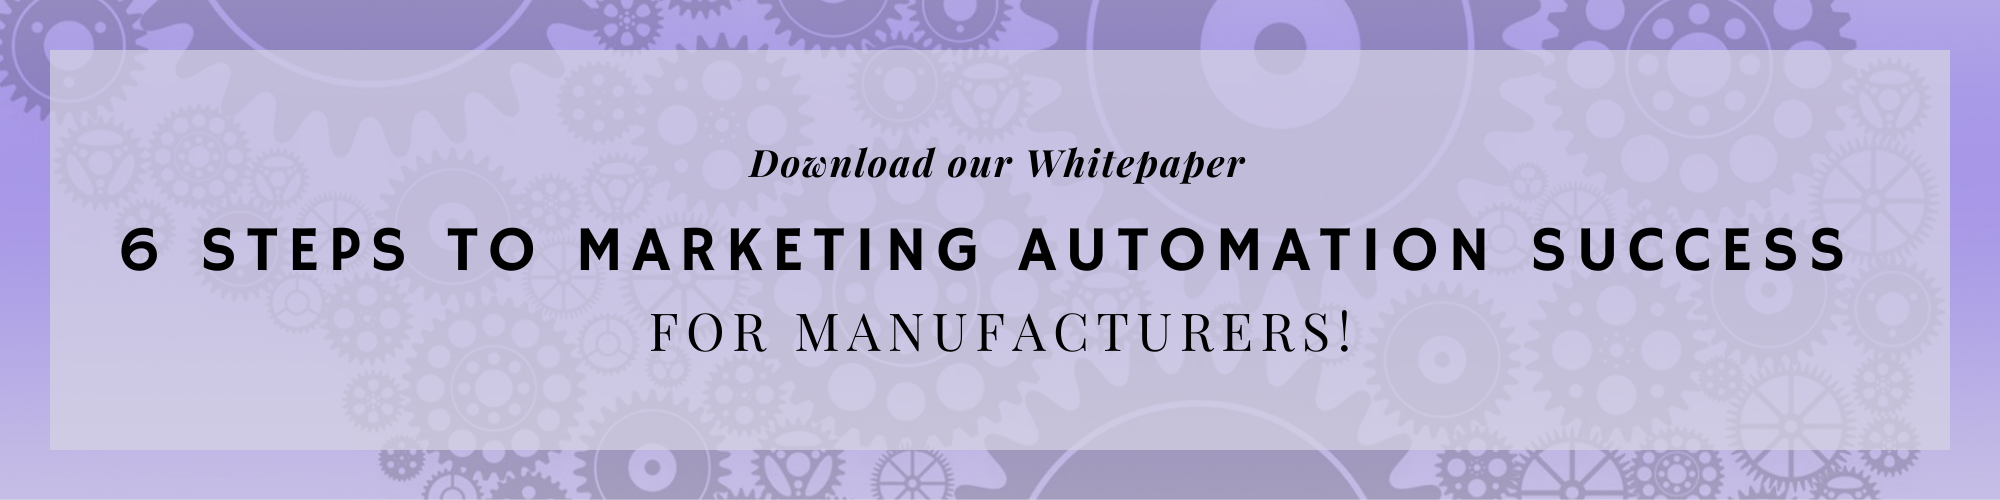 Download Our Whitepaper CTA